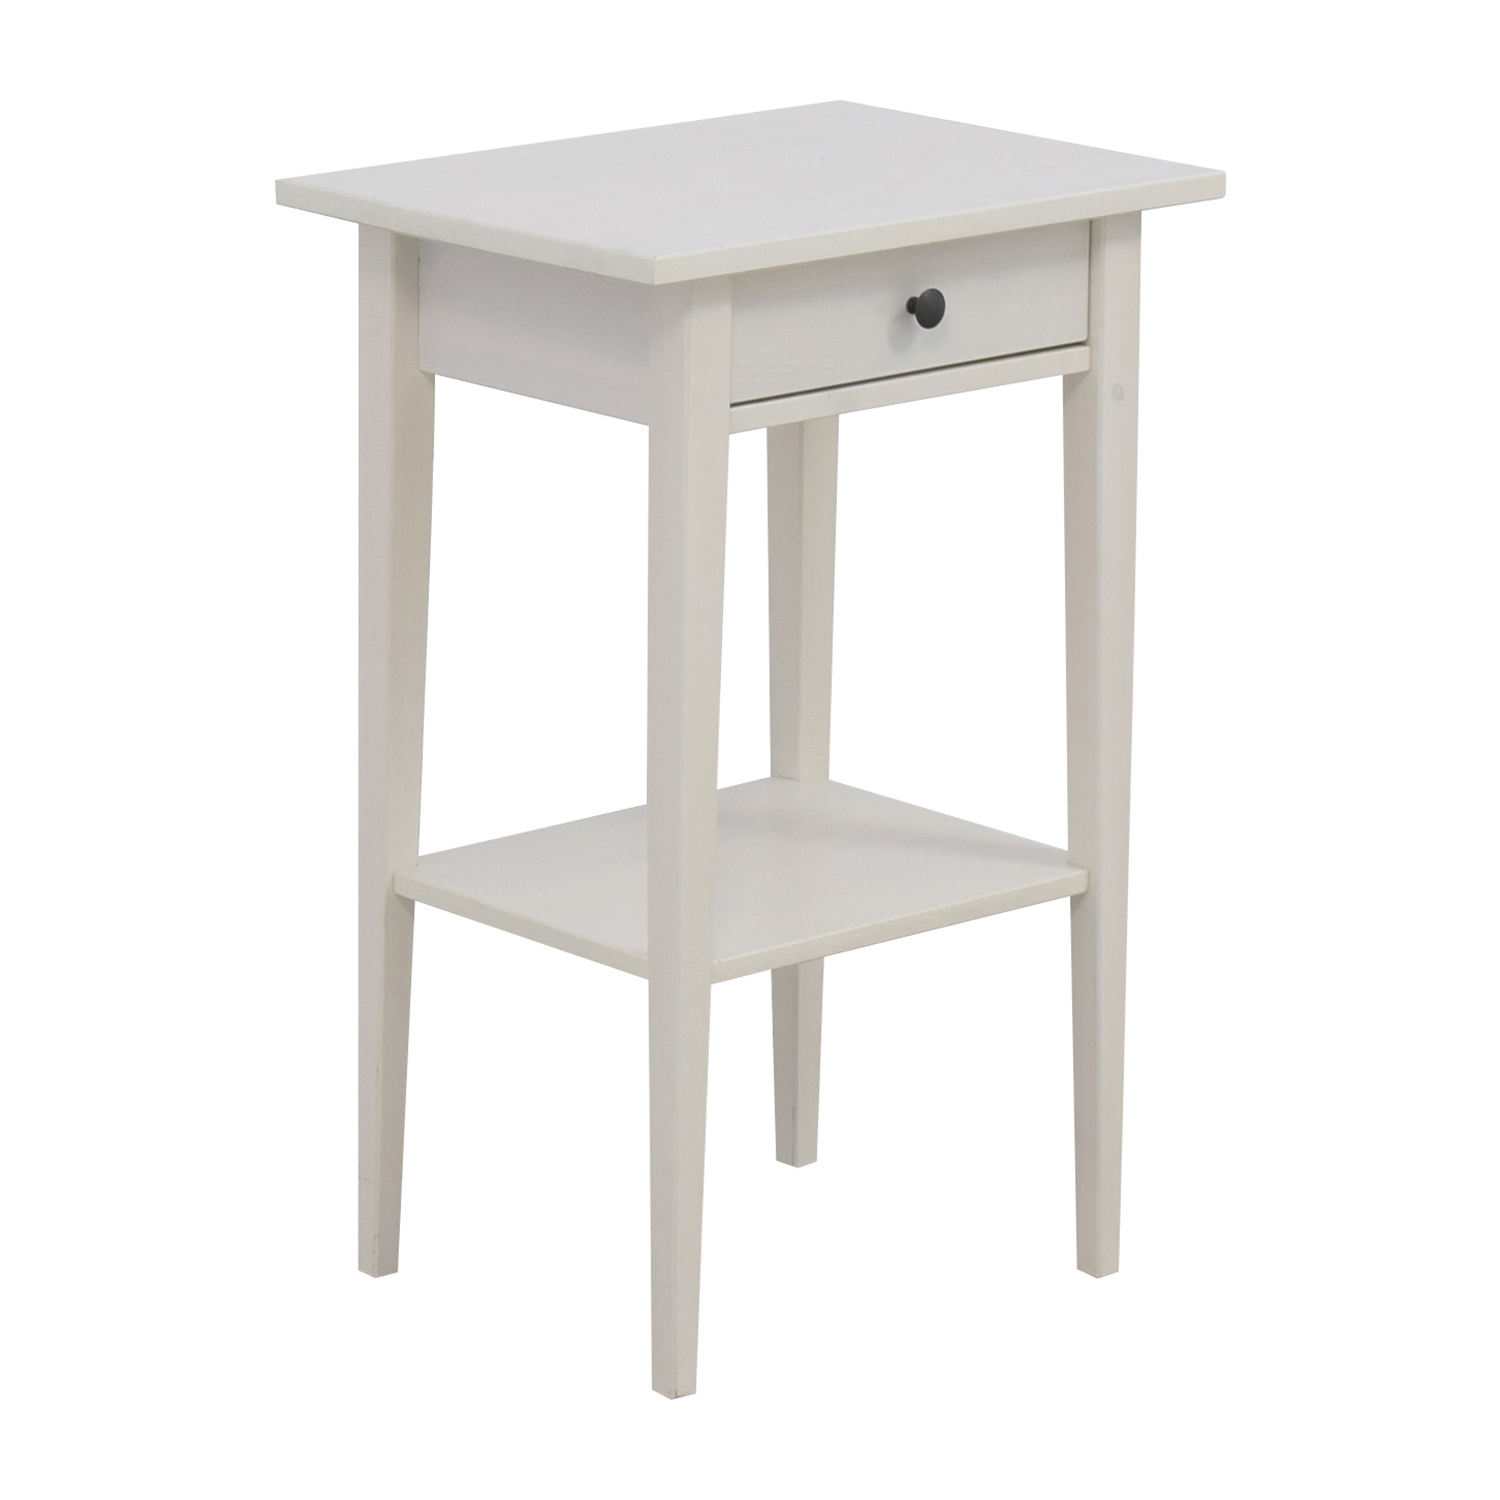 48 off ikea ikea hemnes white night table tables. Black Bedroom Furniture Sets. Home Design Ideas